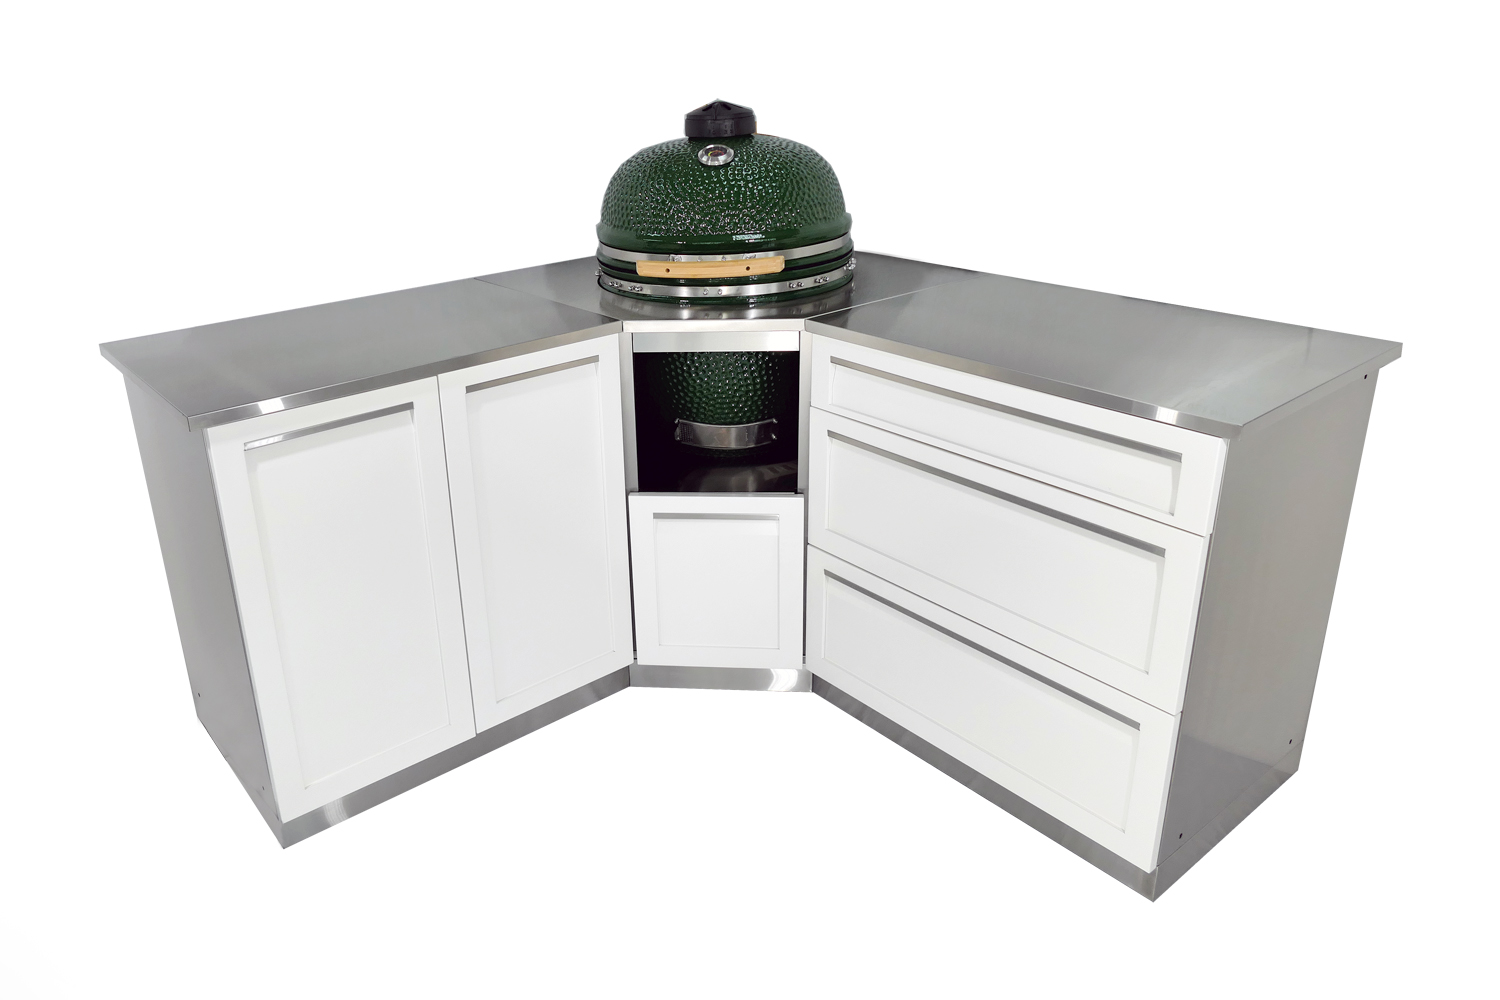 Insert Kamado Grill Outdoor Kitchen Cabinet - W40056 - 4 Life ...